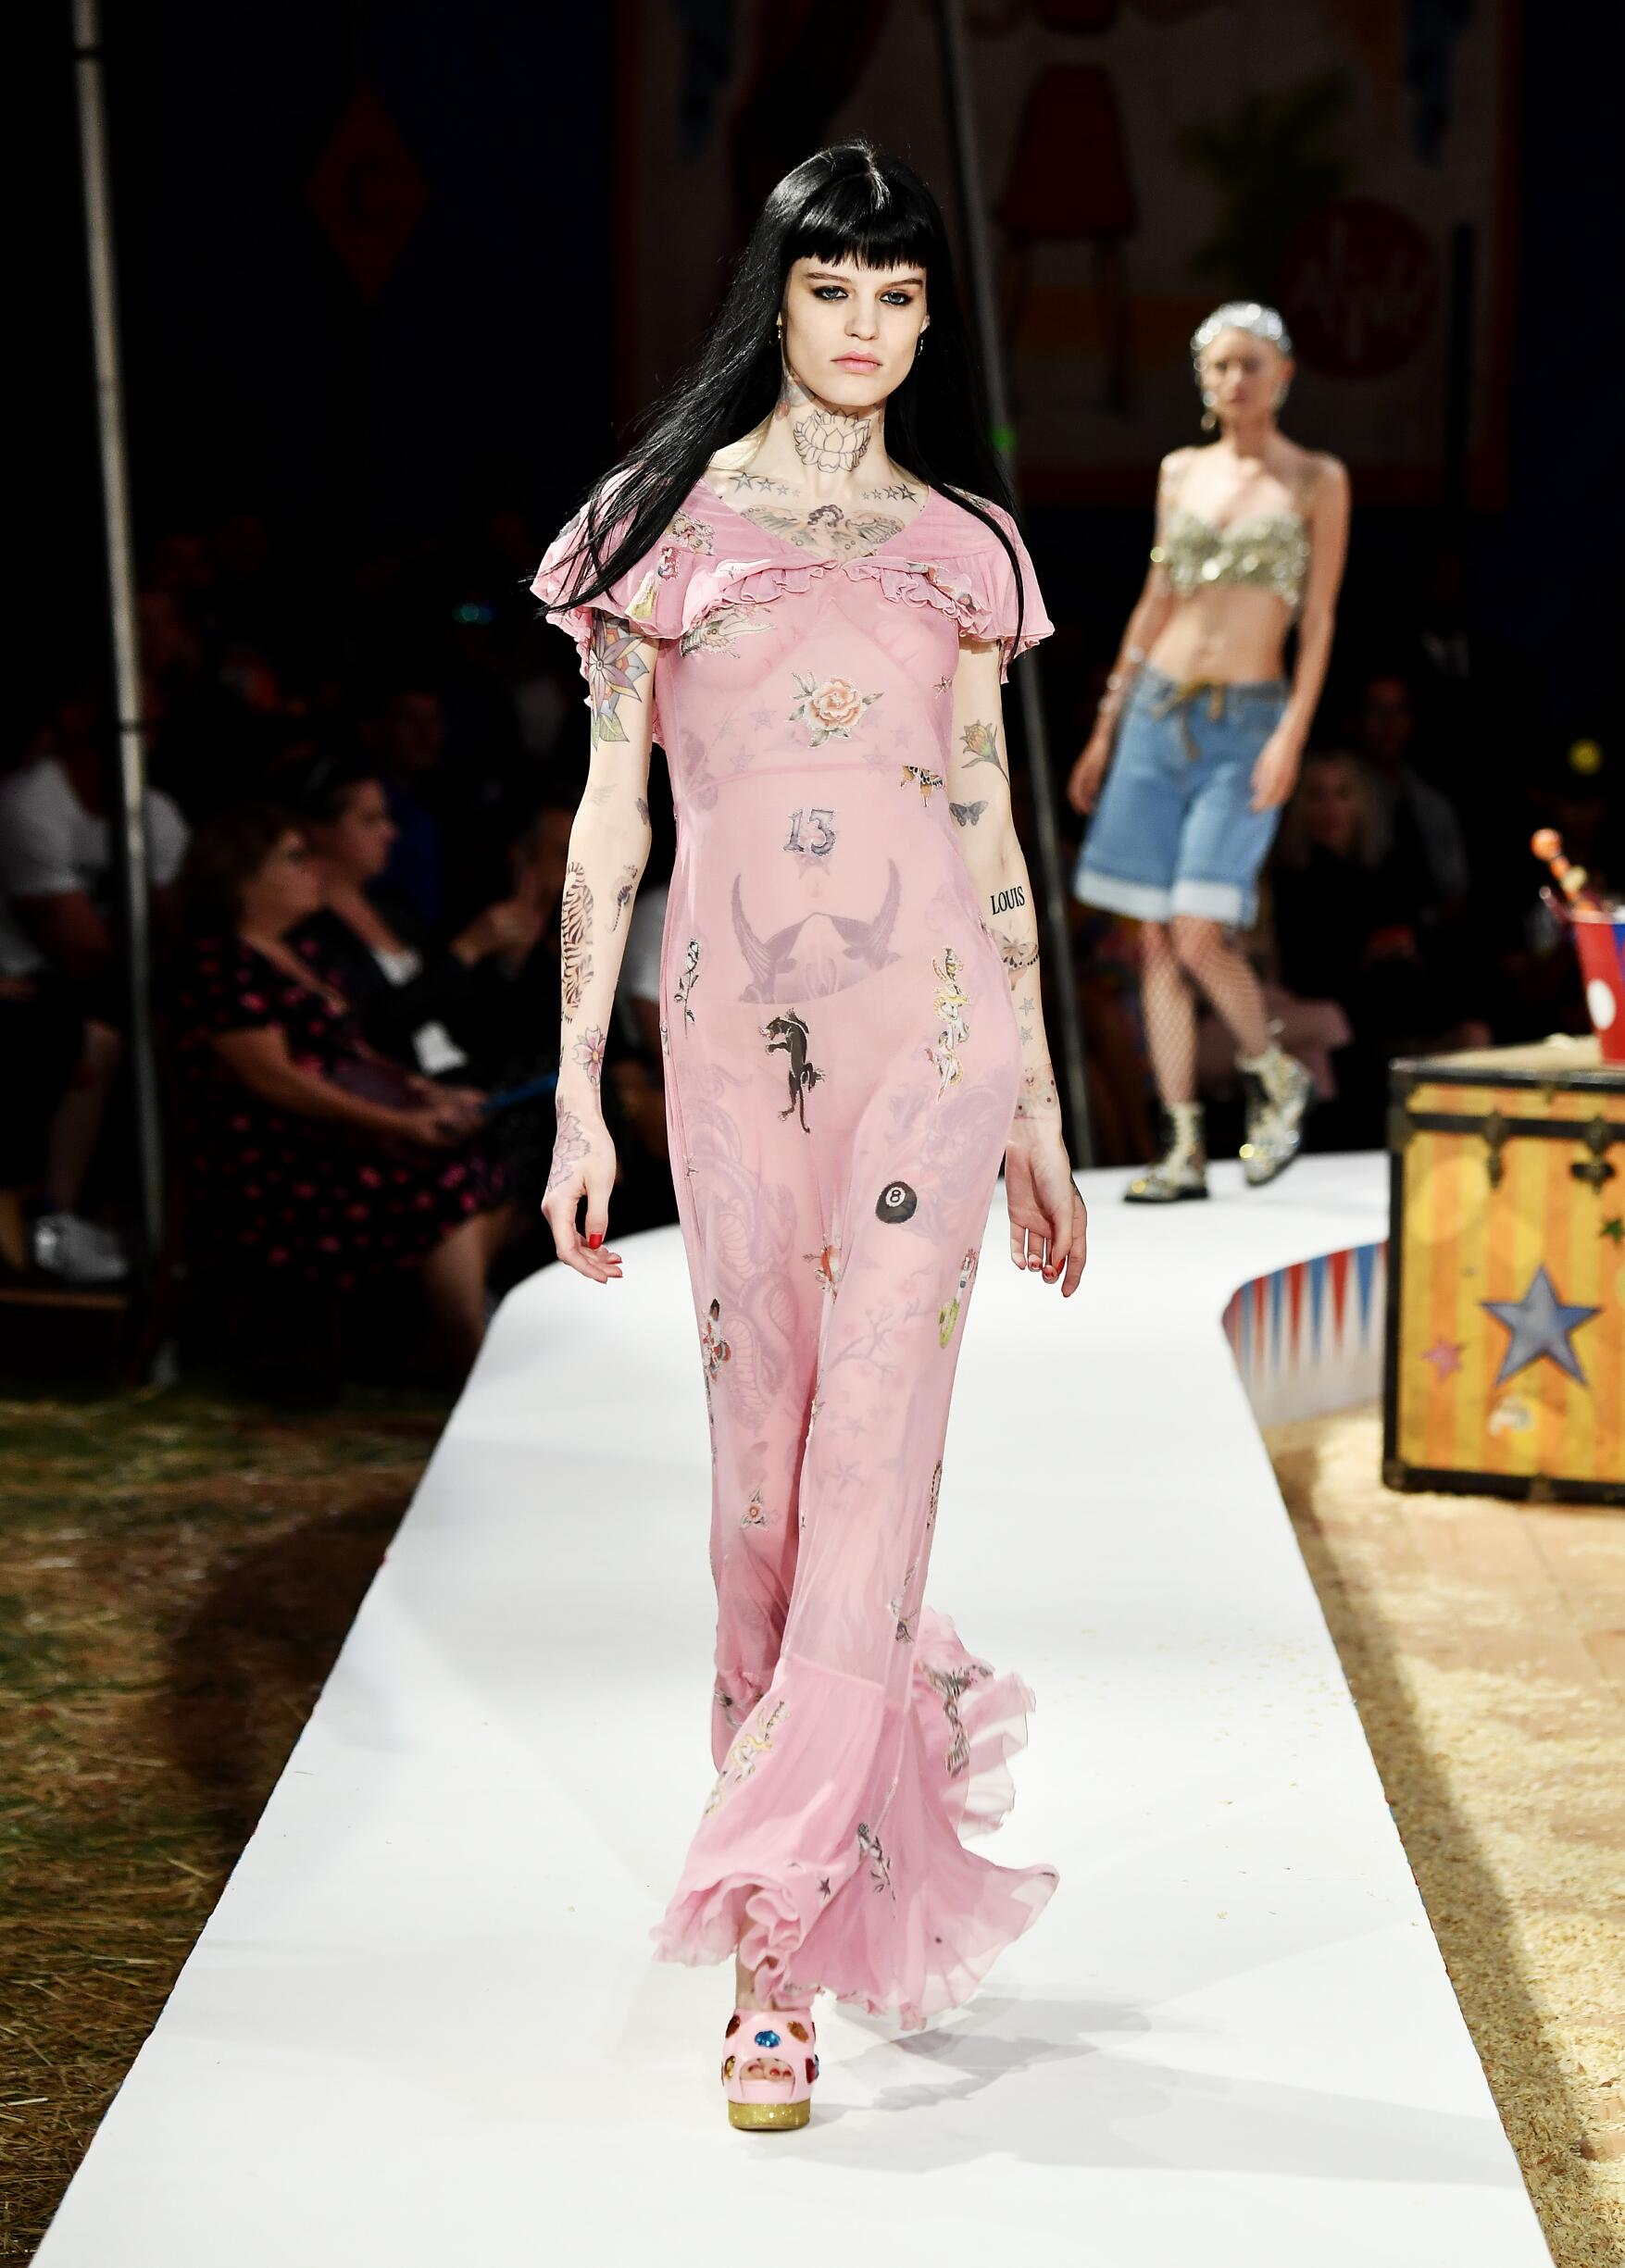 Moschino Spring Summer 2019 Menswear and Women's Resort Collection Look 74 Los Angeles